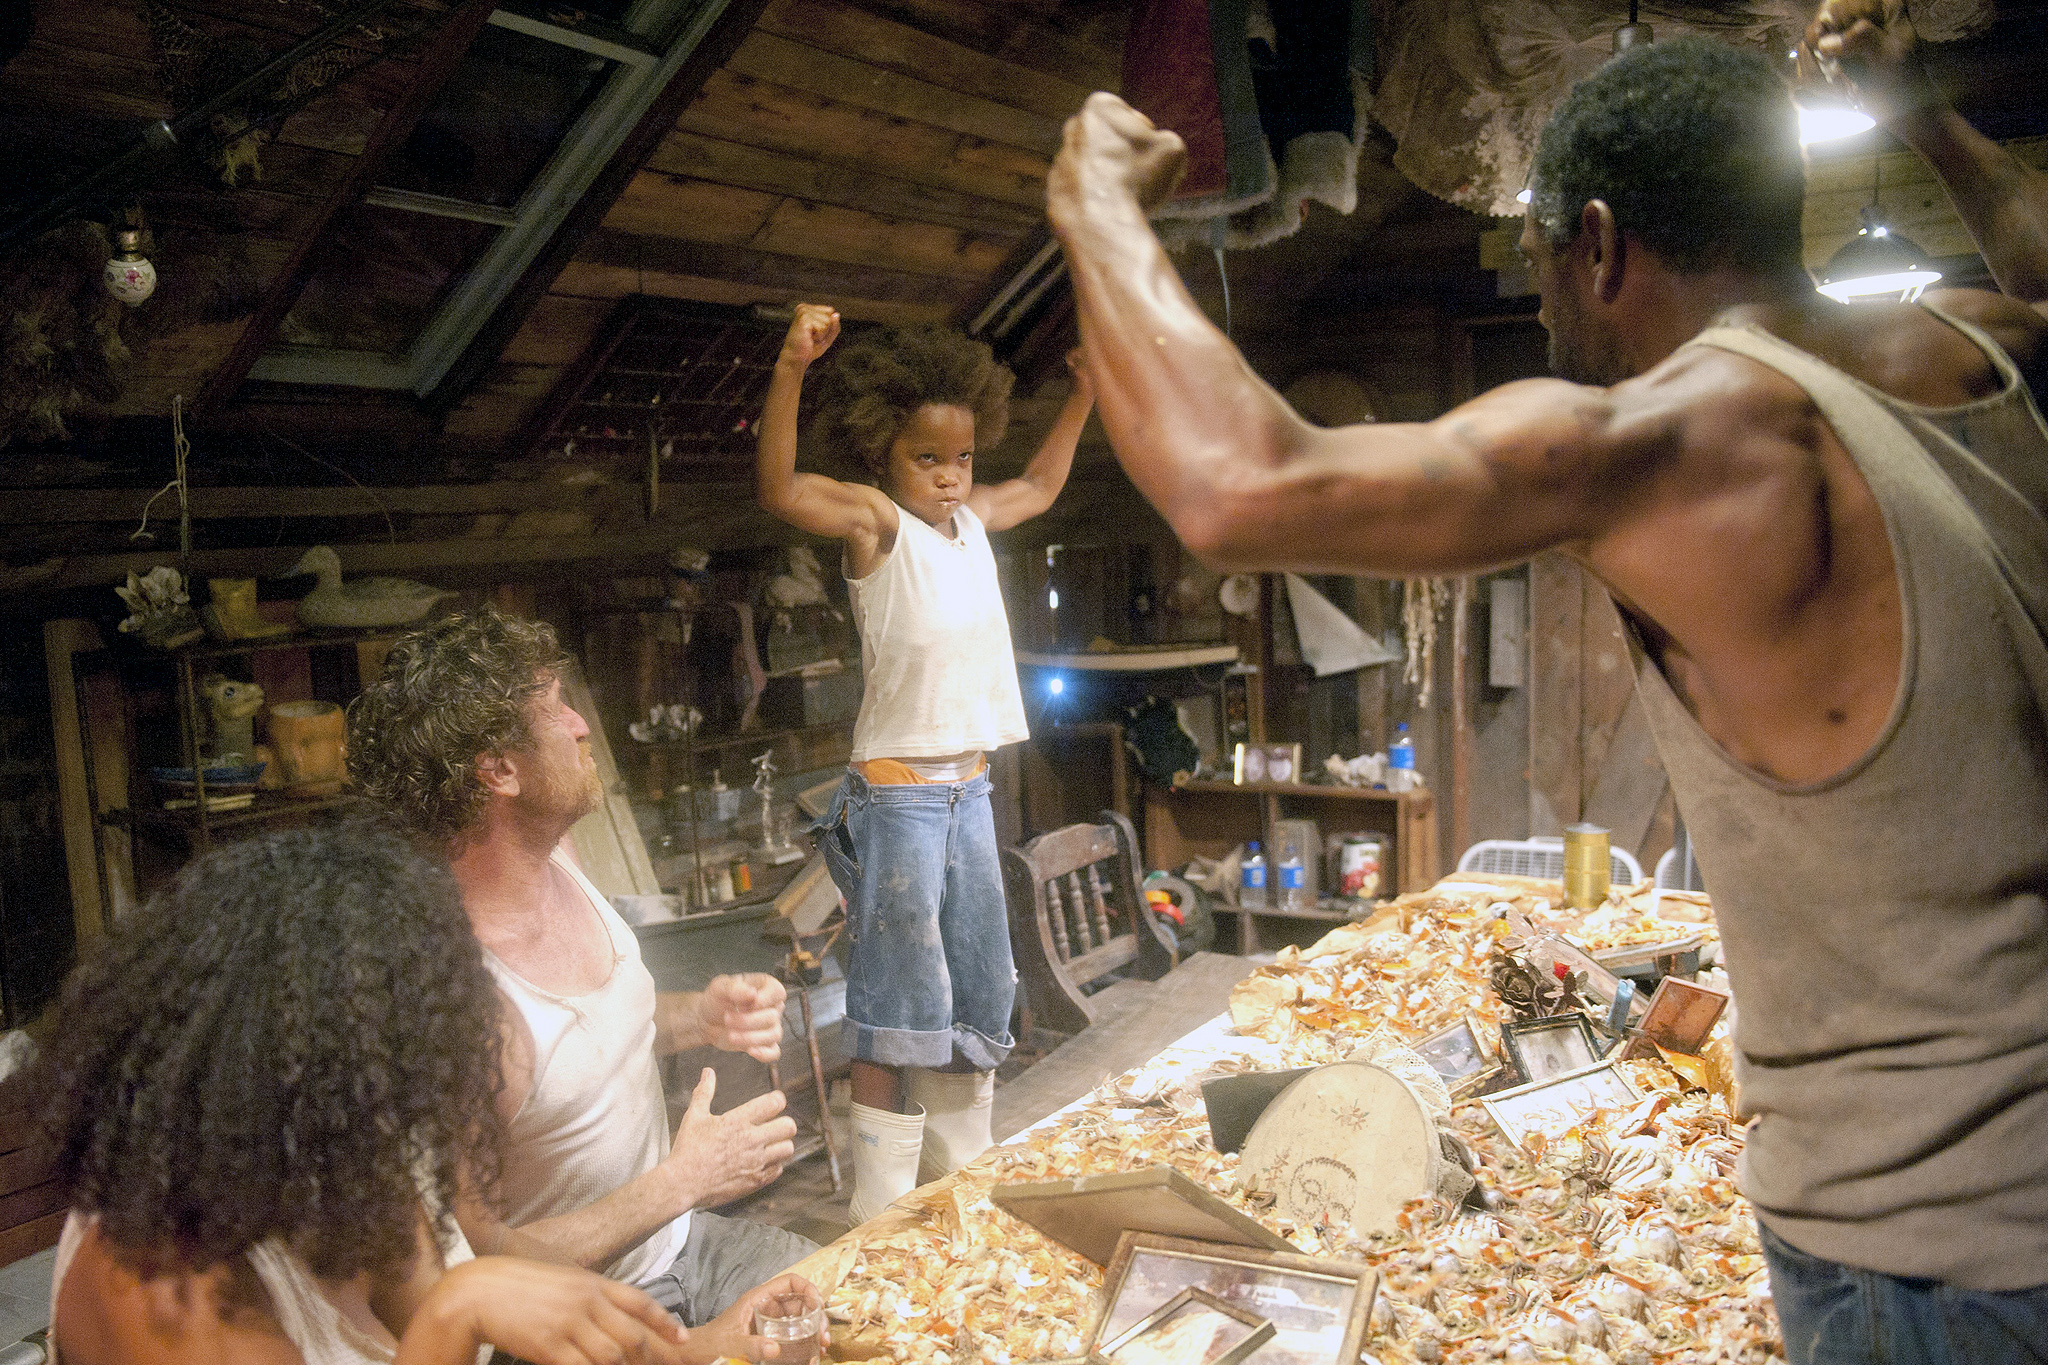 Sundance Film Festival 2012: Beasts of the Southern Wild and Wrong